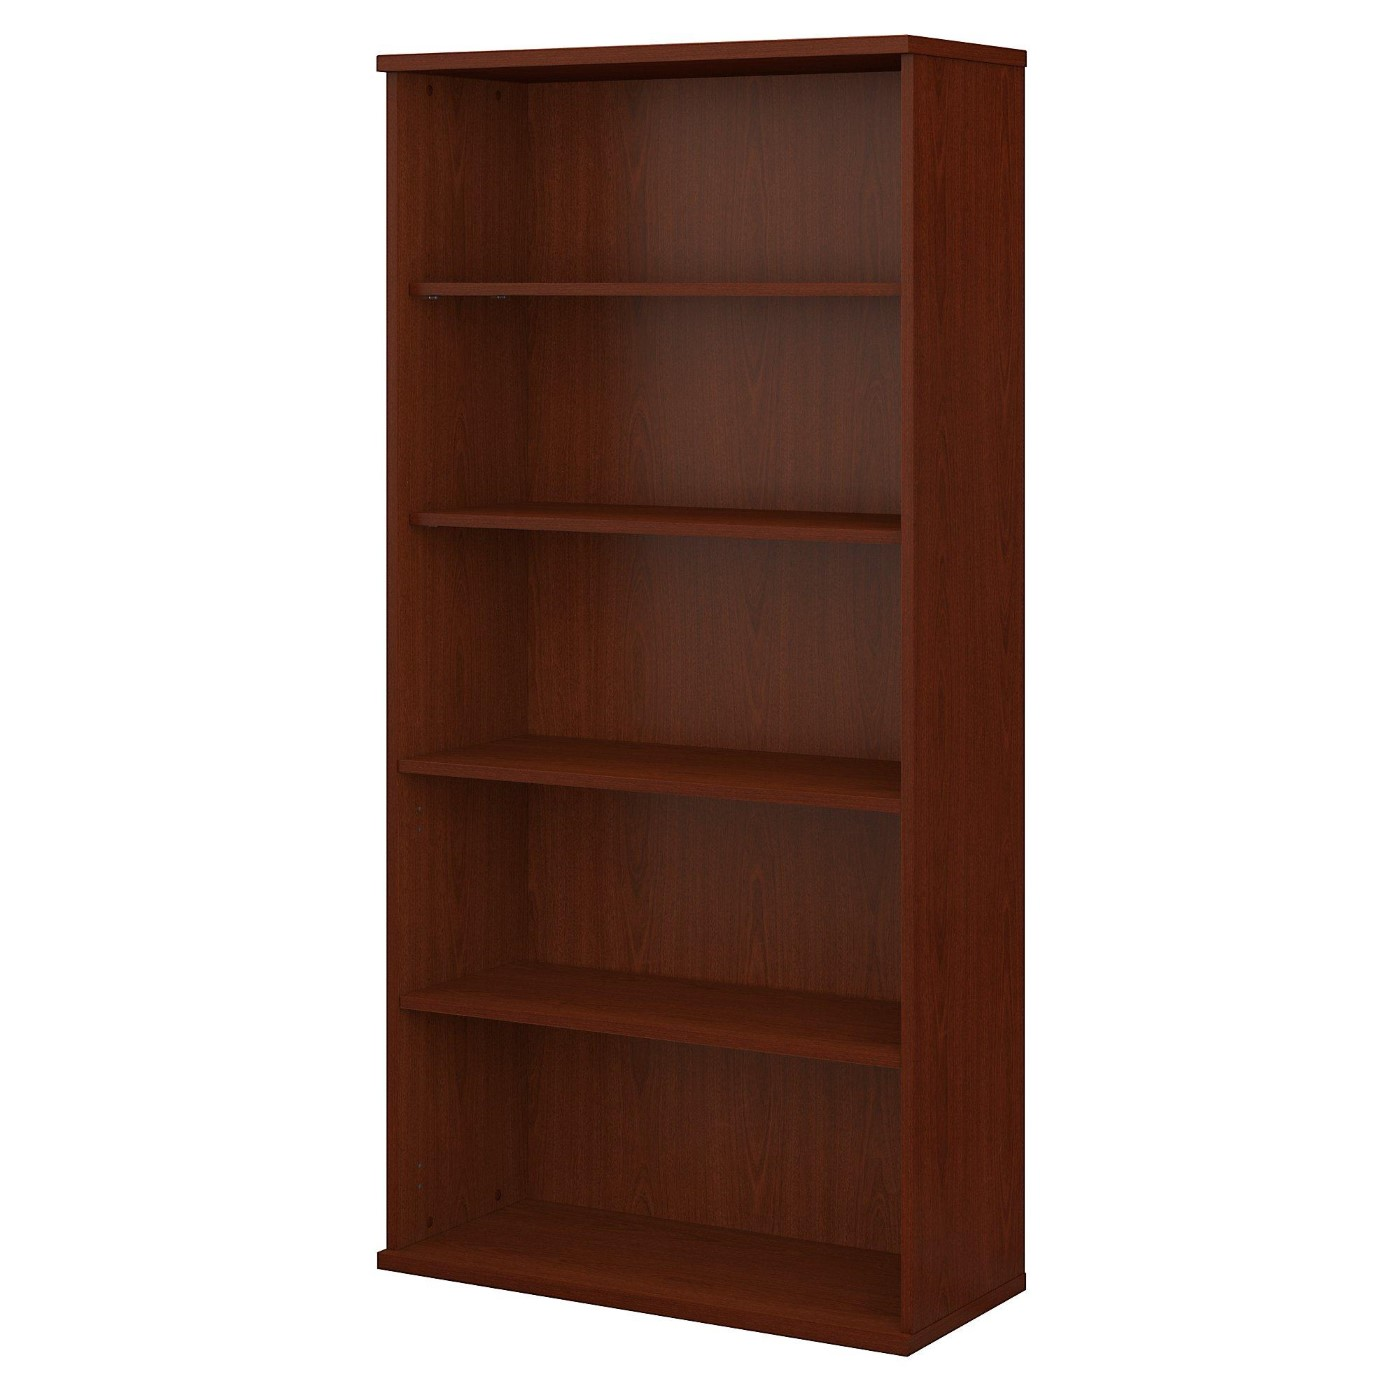 <font color=#c60><b>BUSH BUSINESS FURNITURE SERIES C 36W 5 SHELF BOOKCASE. FREE SHIPPING</font></b></font></b>